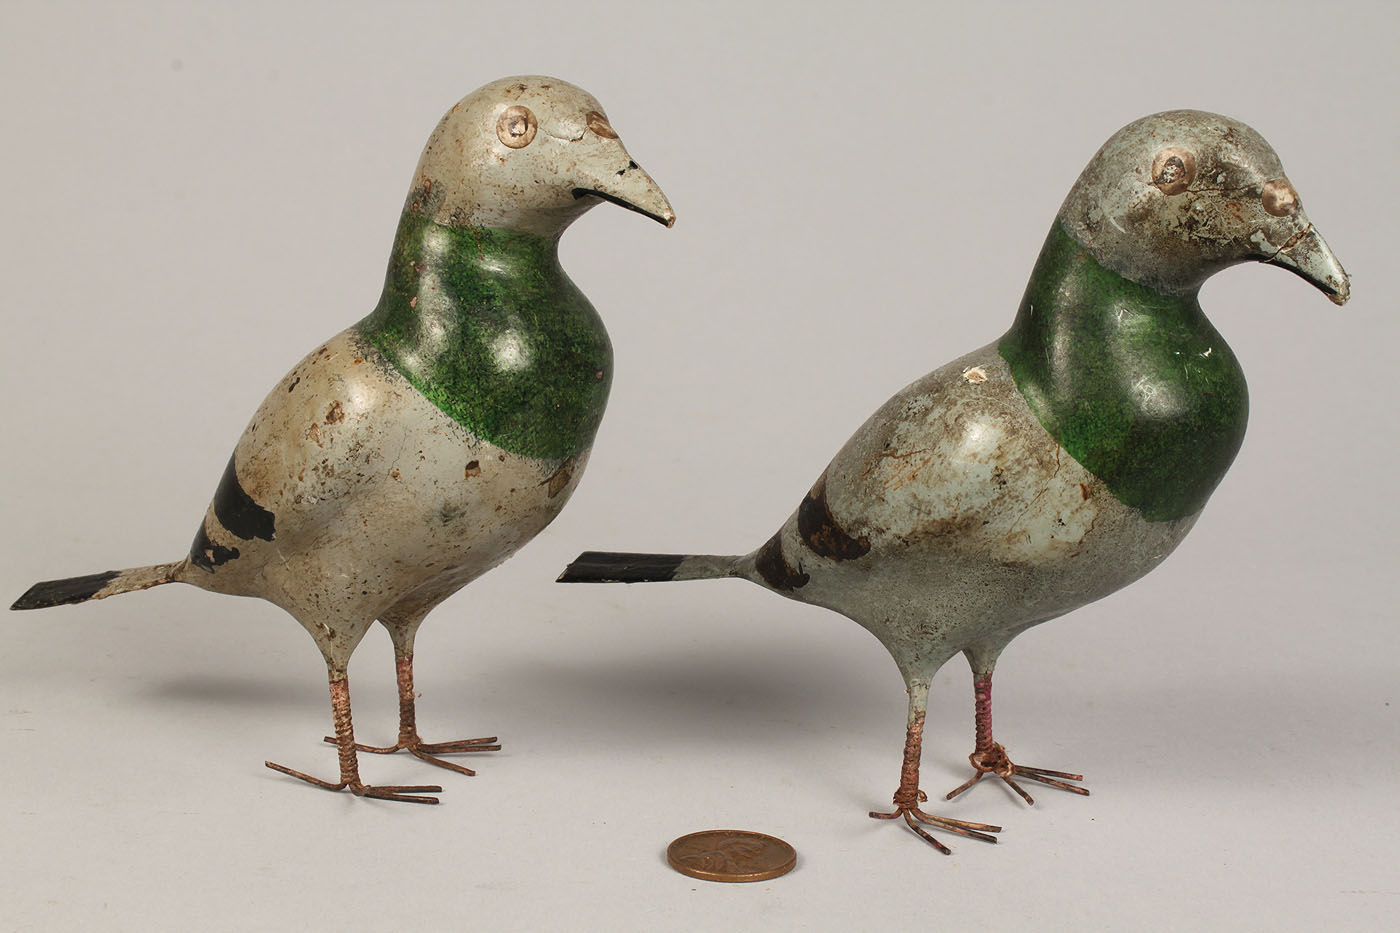 essay bird pigeon Passenger pigeons (ectopistes migratorius) were once so numerous that by  some  in less than a century, the most numerous bird on the planet was  completely  the passenger pigeon: once there were billions an essay by  jerry sullivan.